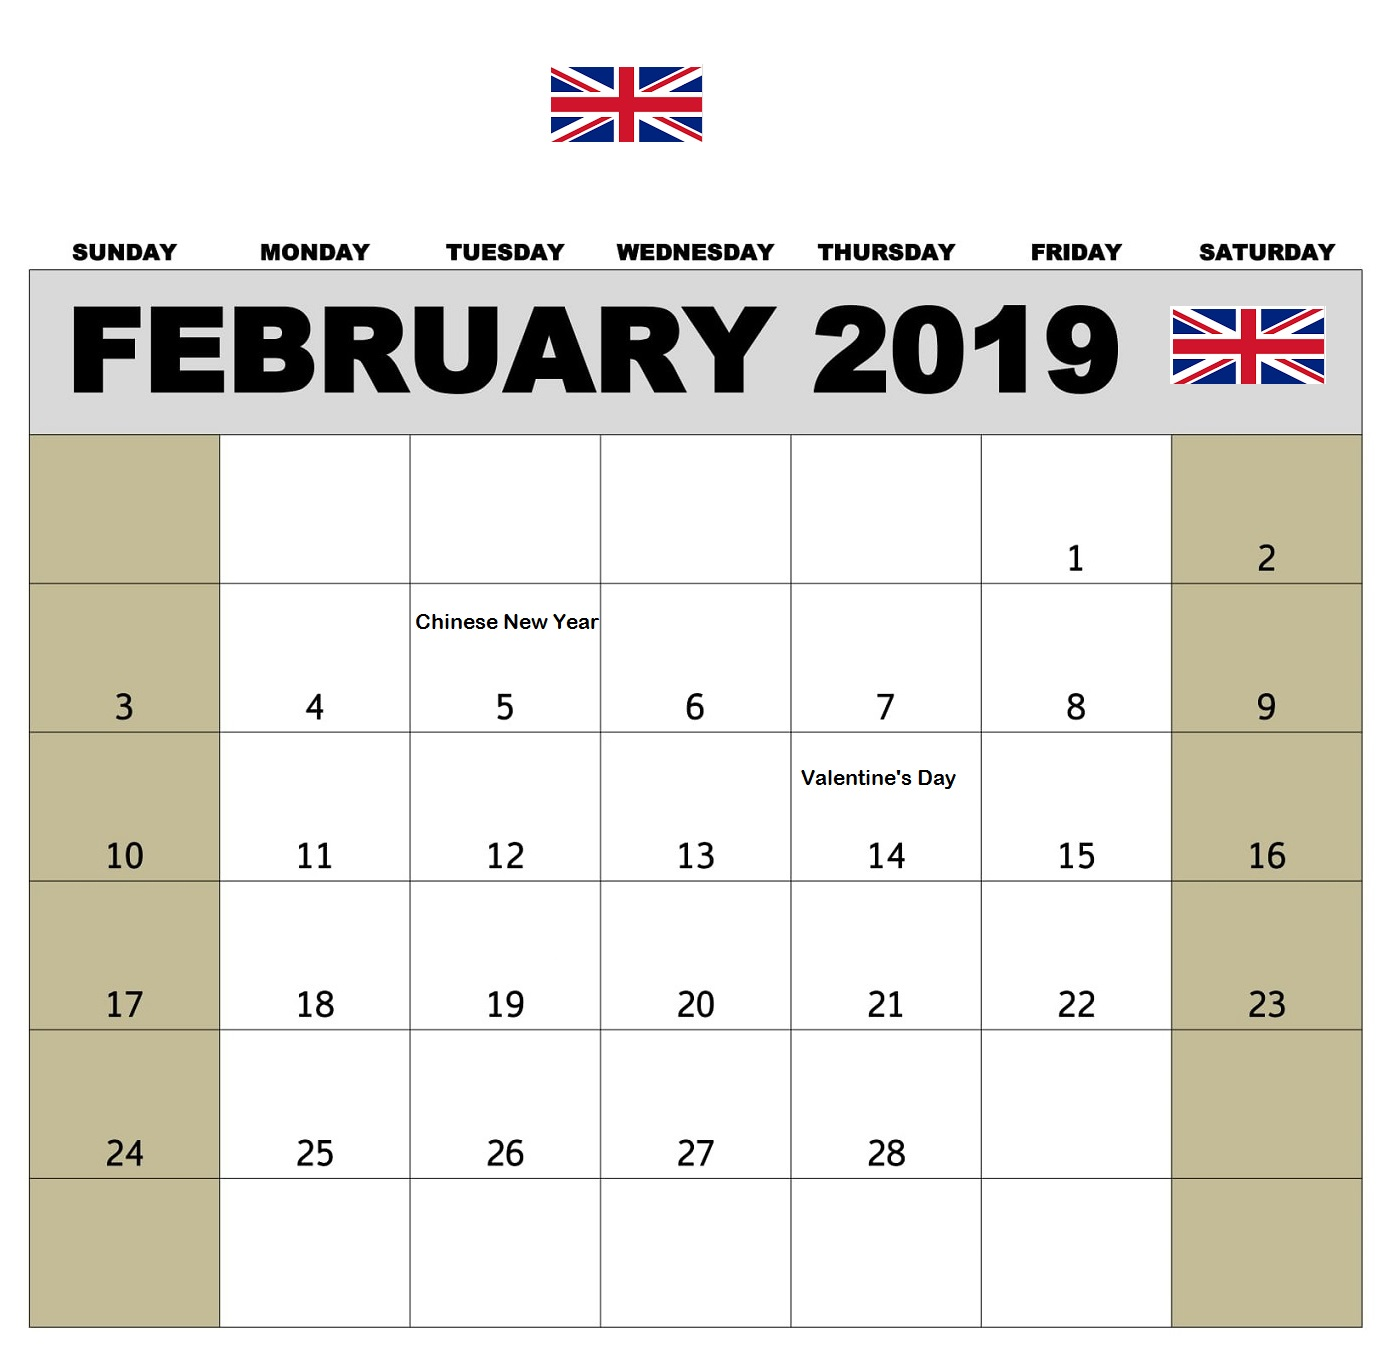 February 2019 Calendar Holidays UK